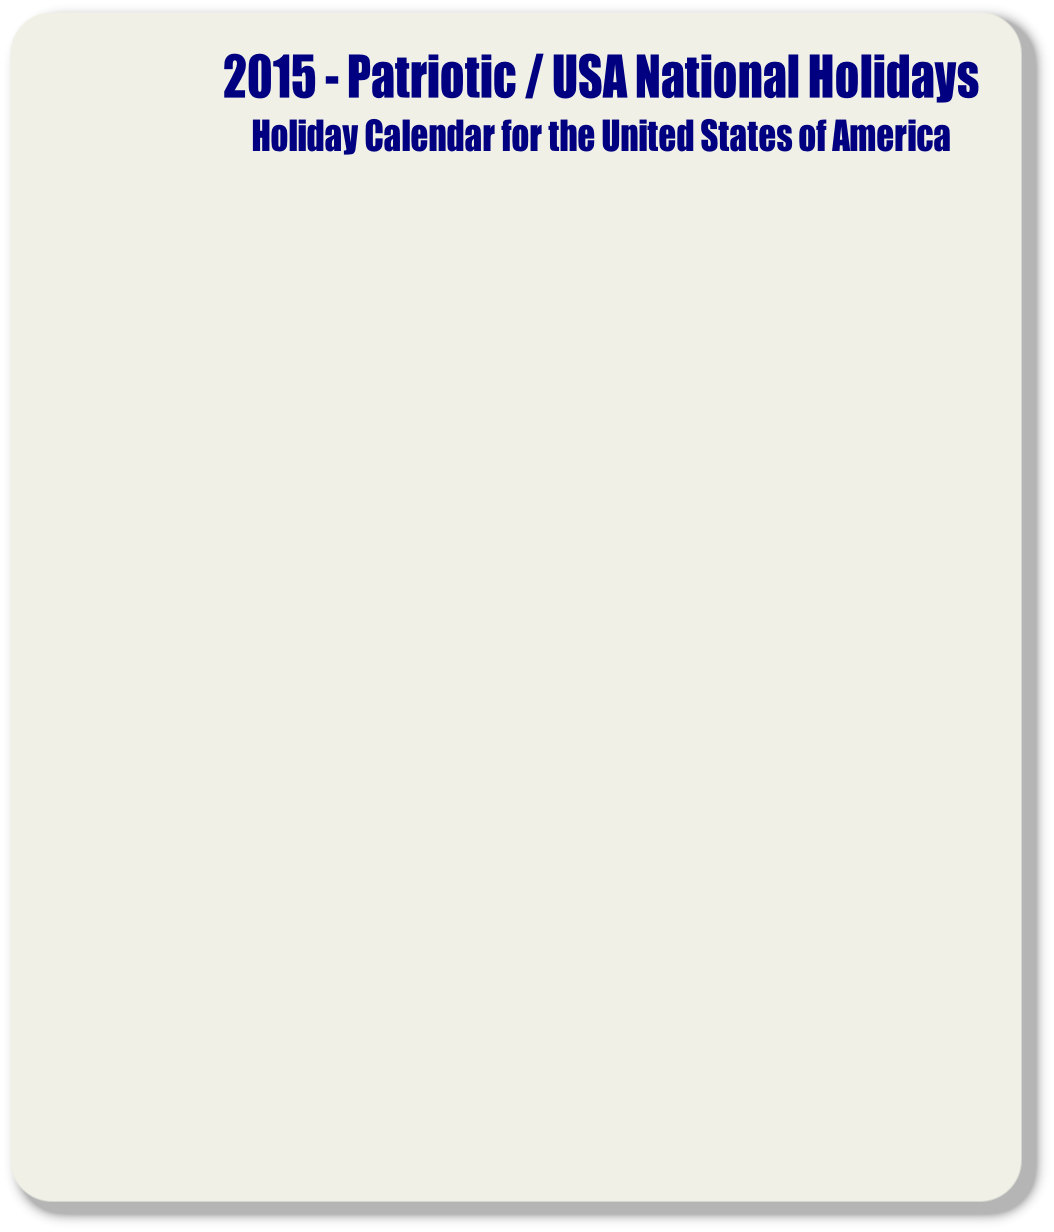 2015 - Patriotic / USA National Holidays